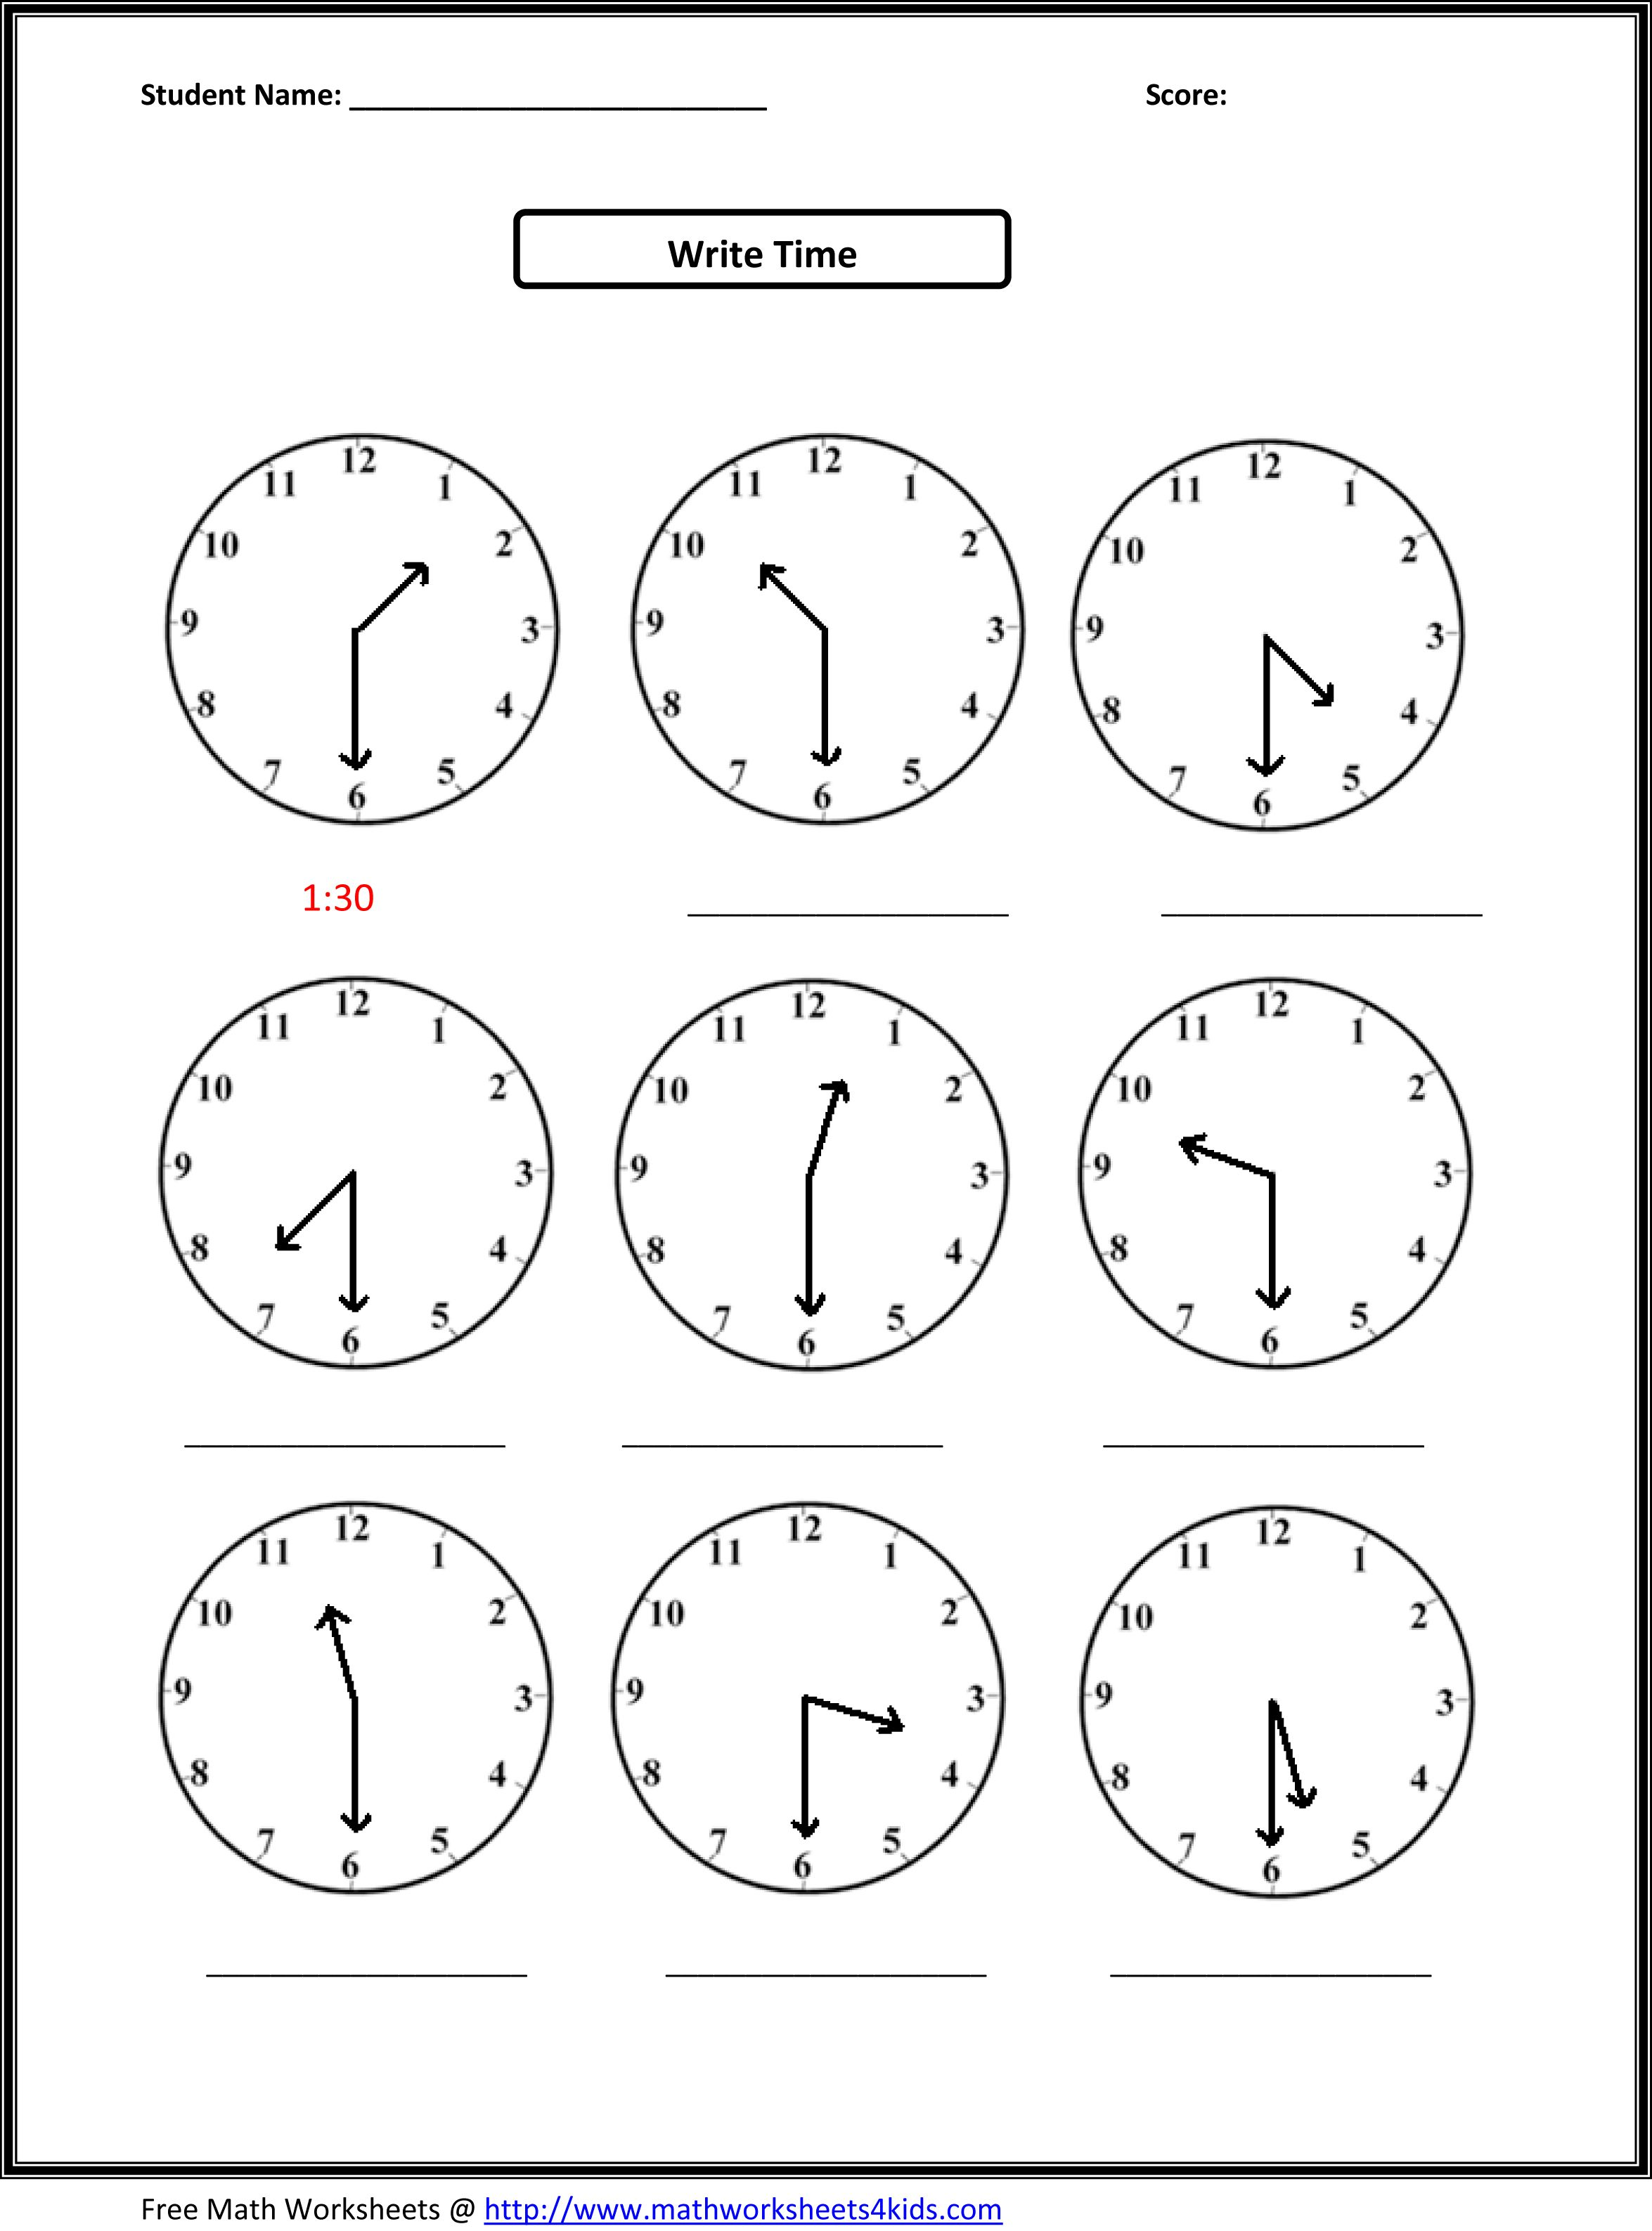 Proatmealus  Splendid Worksheet On Time For Grade   Reocurent With Handsome Free Printable Telling Time Worksheets Nd Grade  Reocurent With Comely Punctuation Worksheets For Nd Grade Also Reading Strategy Worksheets In Addition Th Grade Percent Worksheets And Science Worksheets For Grade  As Well As Spanish Worksheets For Adults Additionally Photosynthesis Worksheets High School From Reocurentcom With Proatmealus  Handsome Worksheet On Time For Grade   Reocurent With Comely Free Printable Telling Time Worksheets Nd Grade  Reocurent And Splendid Punctuation Worksheets For Nd Grade Also Reading Strategy Worksheets In Addition Th Grade Percent Worksheets From Reocurentcom